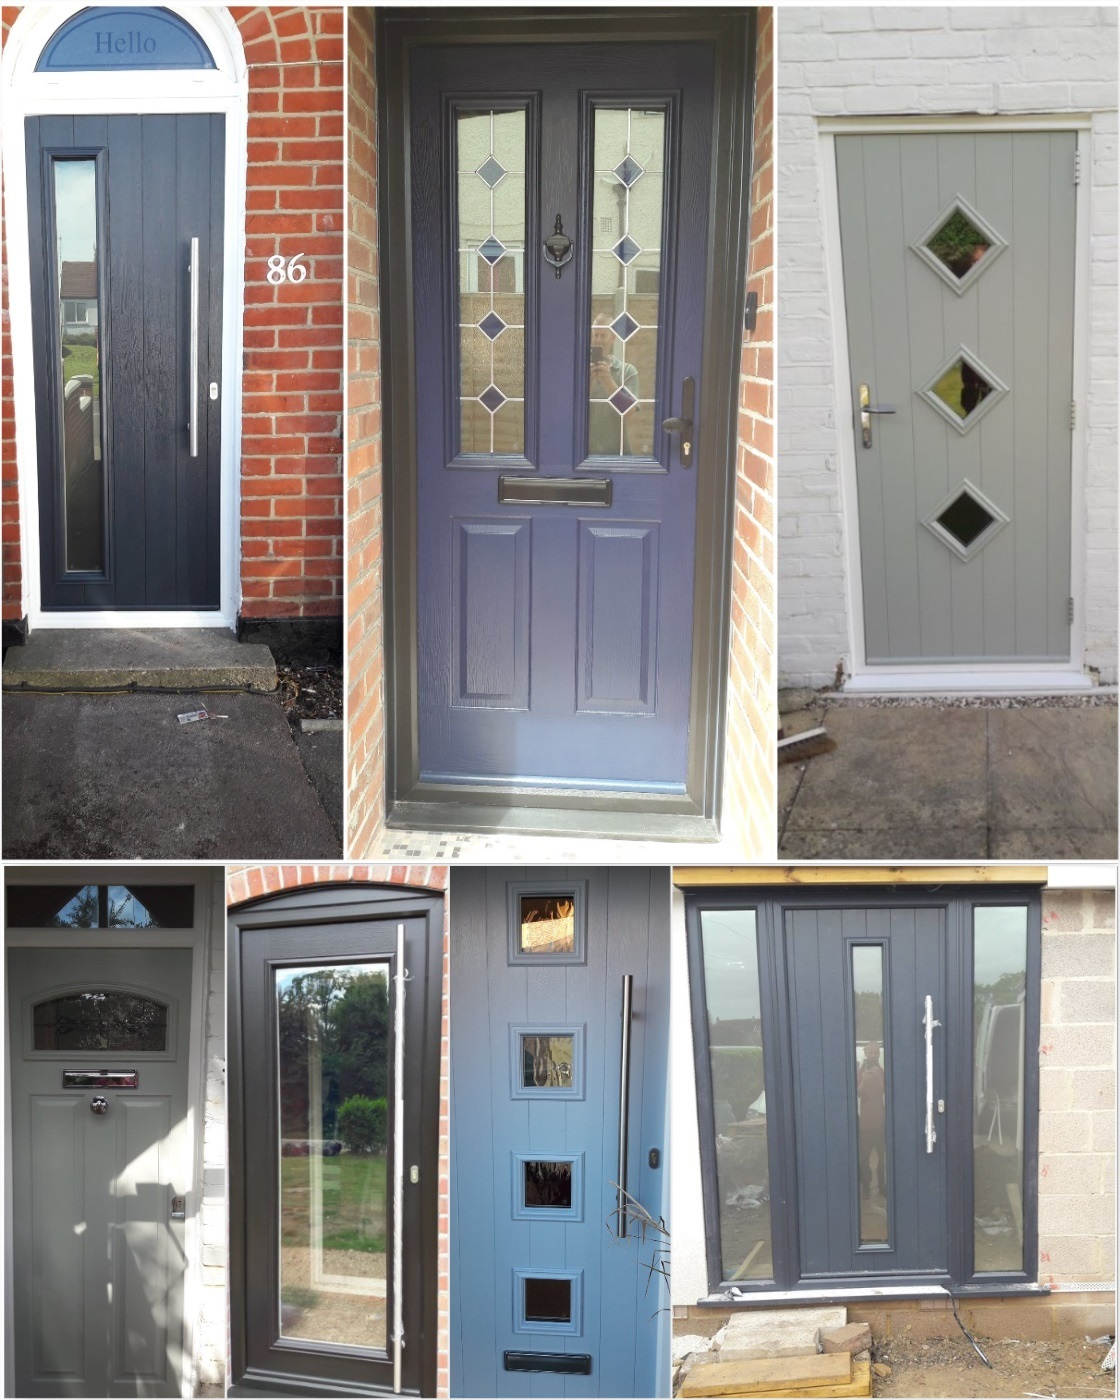 Solidor Door Installations & Solidor Door Installations - Clarity Glass and Glazing Ltd